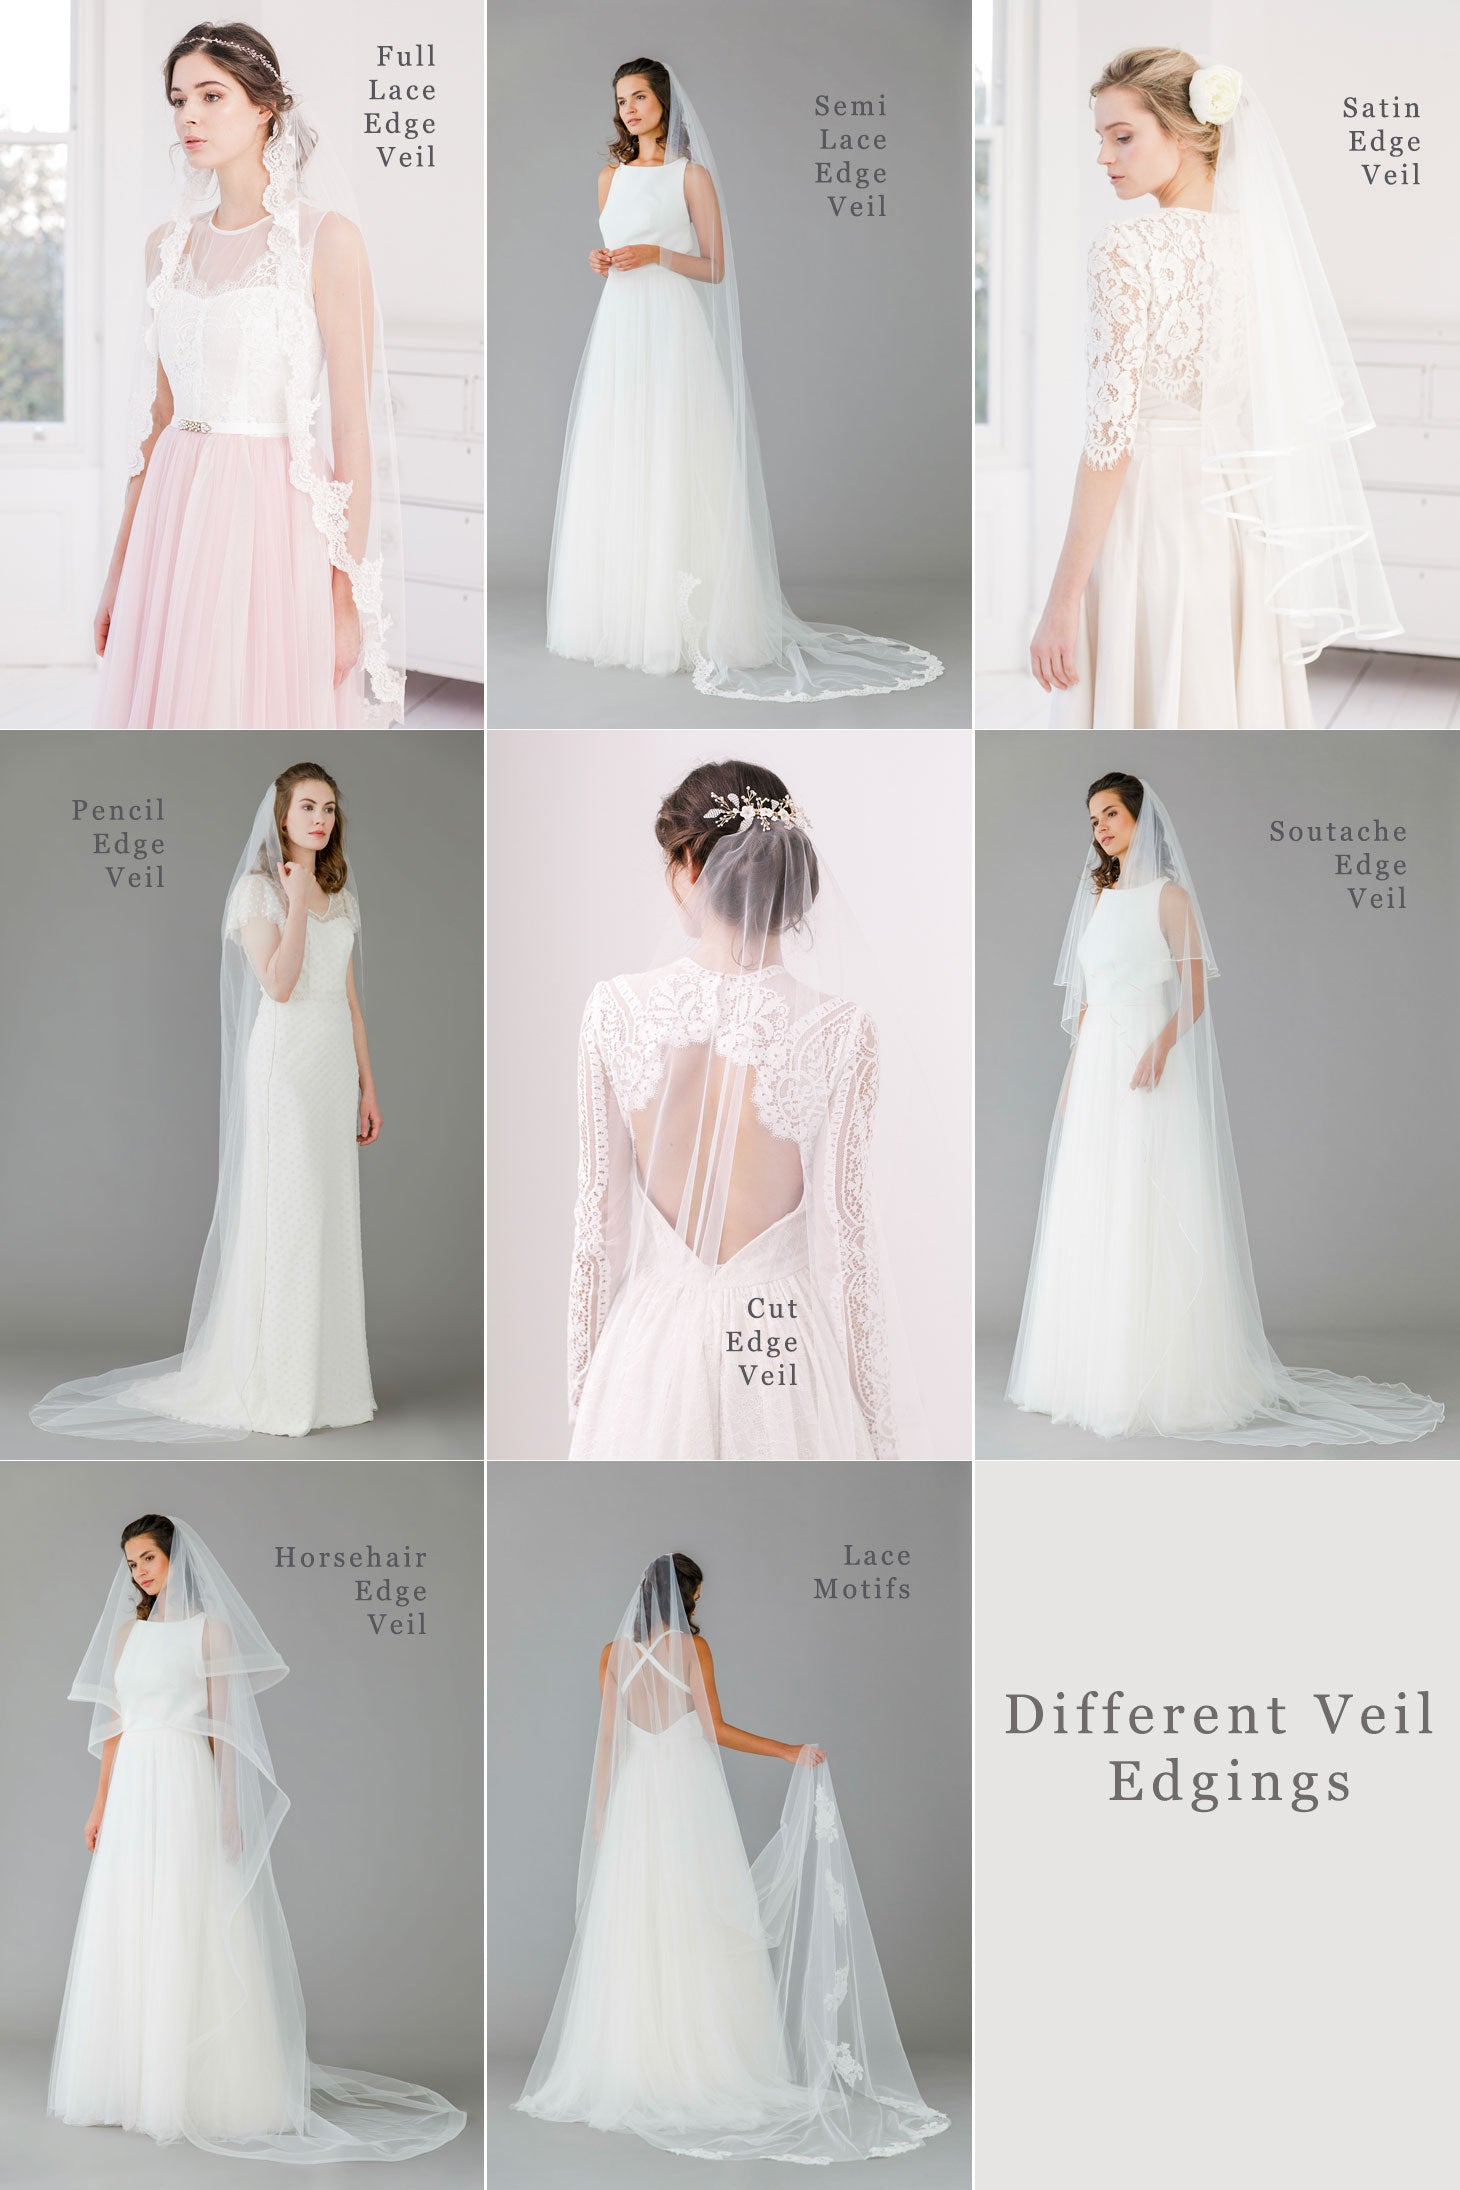 what are the different types of veil edgings available